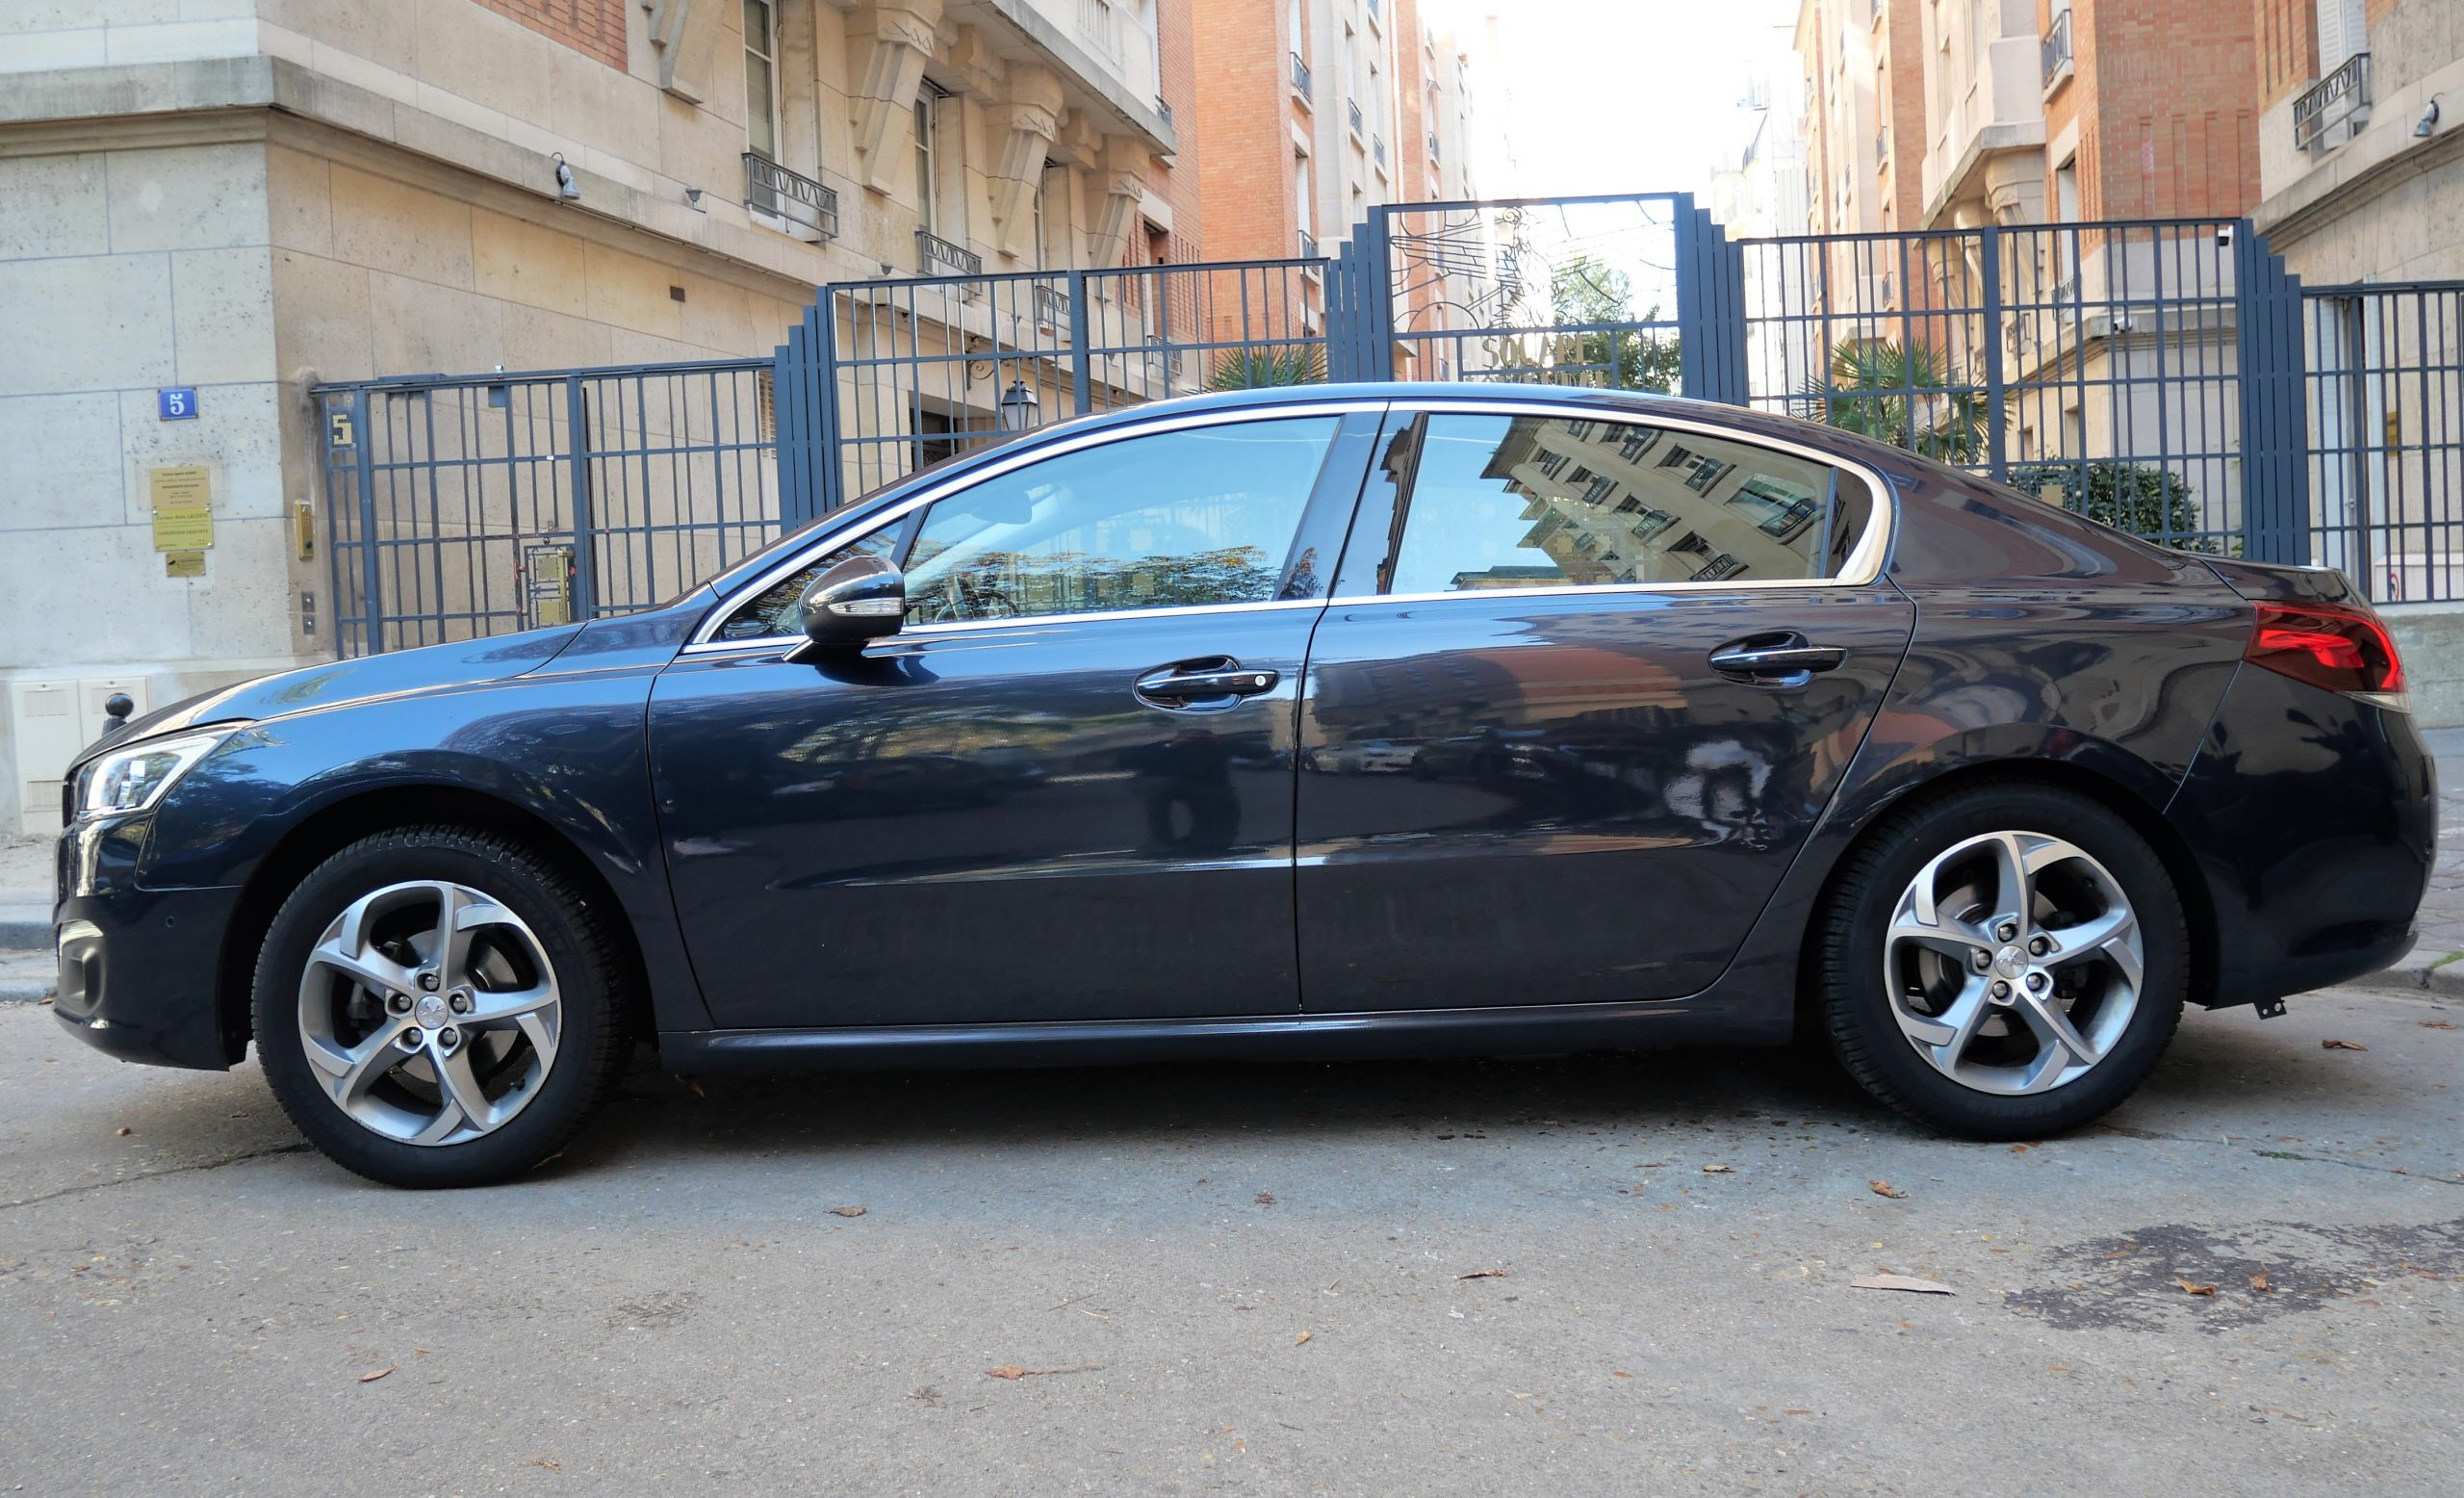 PEUGEOT 508 Allure Phase 2 1.6 BlueHDI S&S 120 ch 1